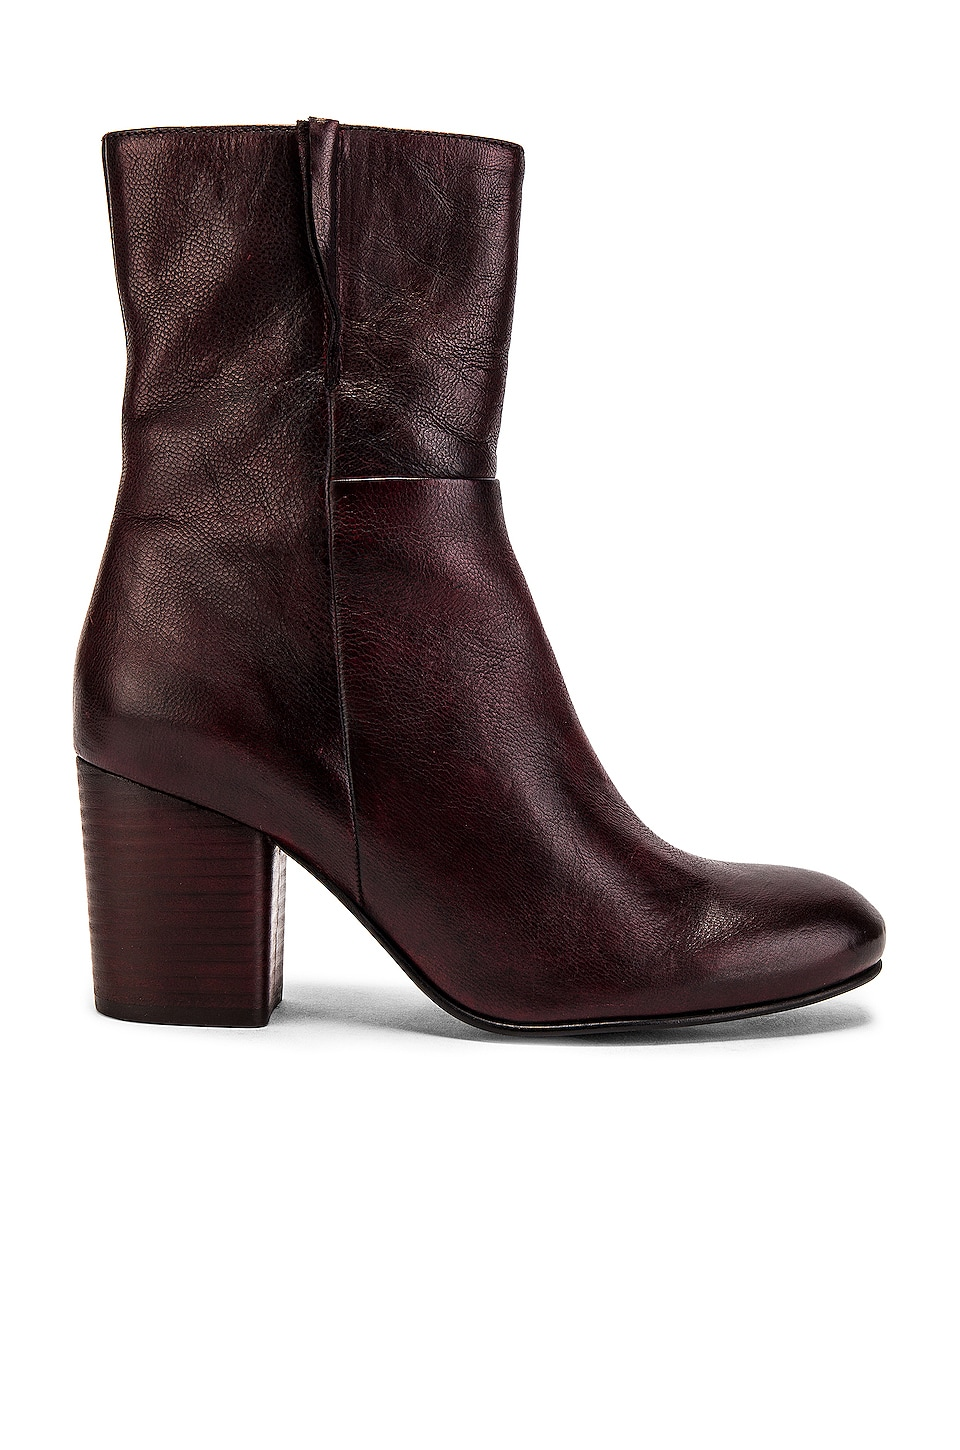 Seychelles Wild Ride Boot in Burgundy Leather